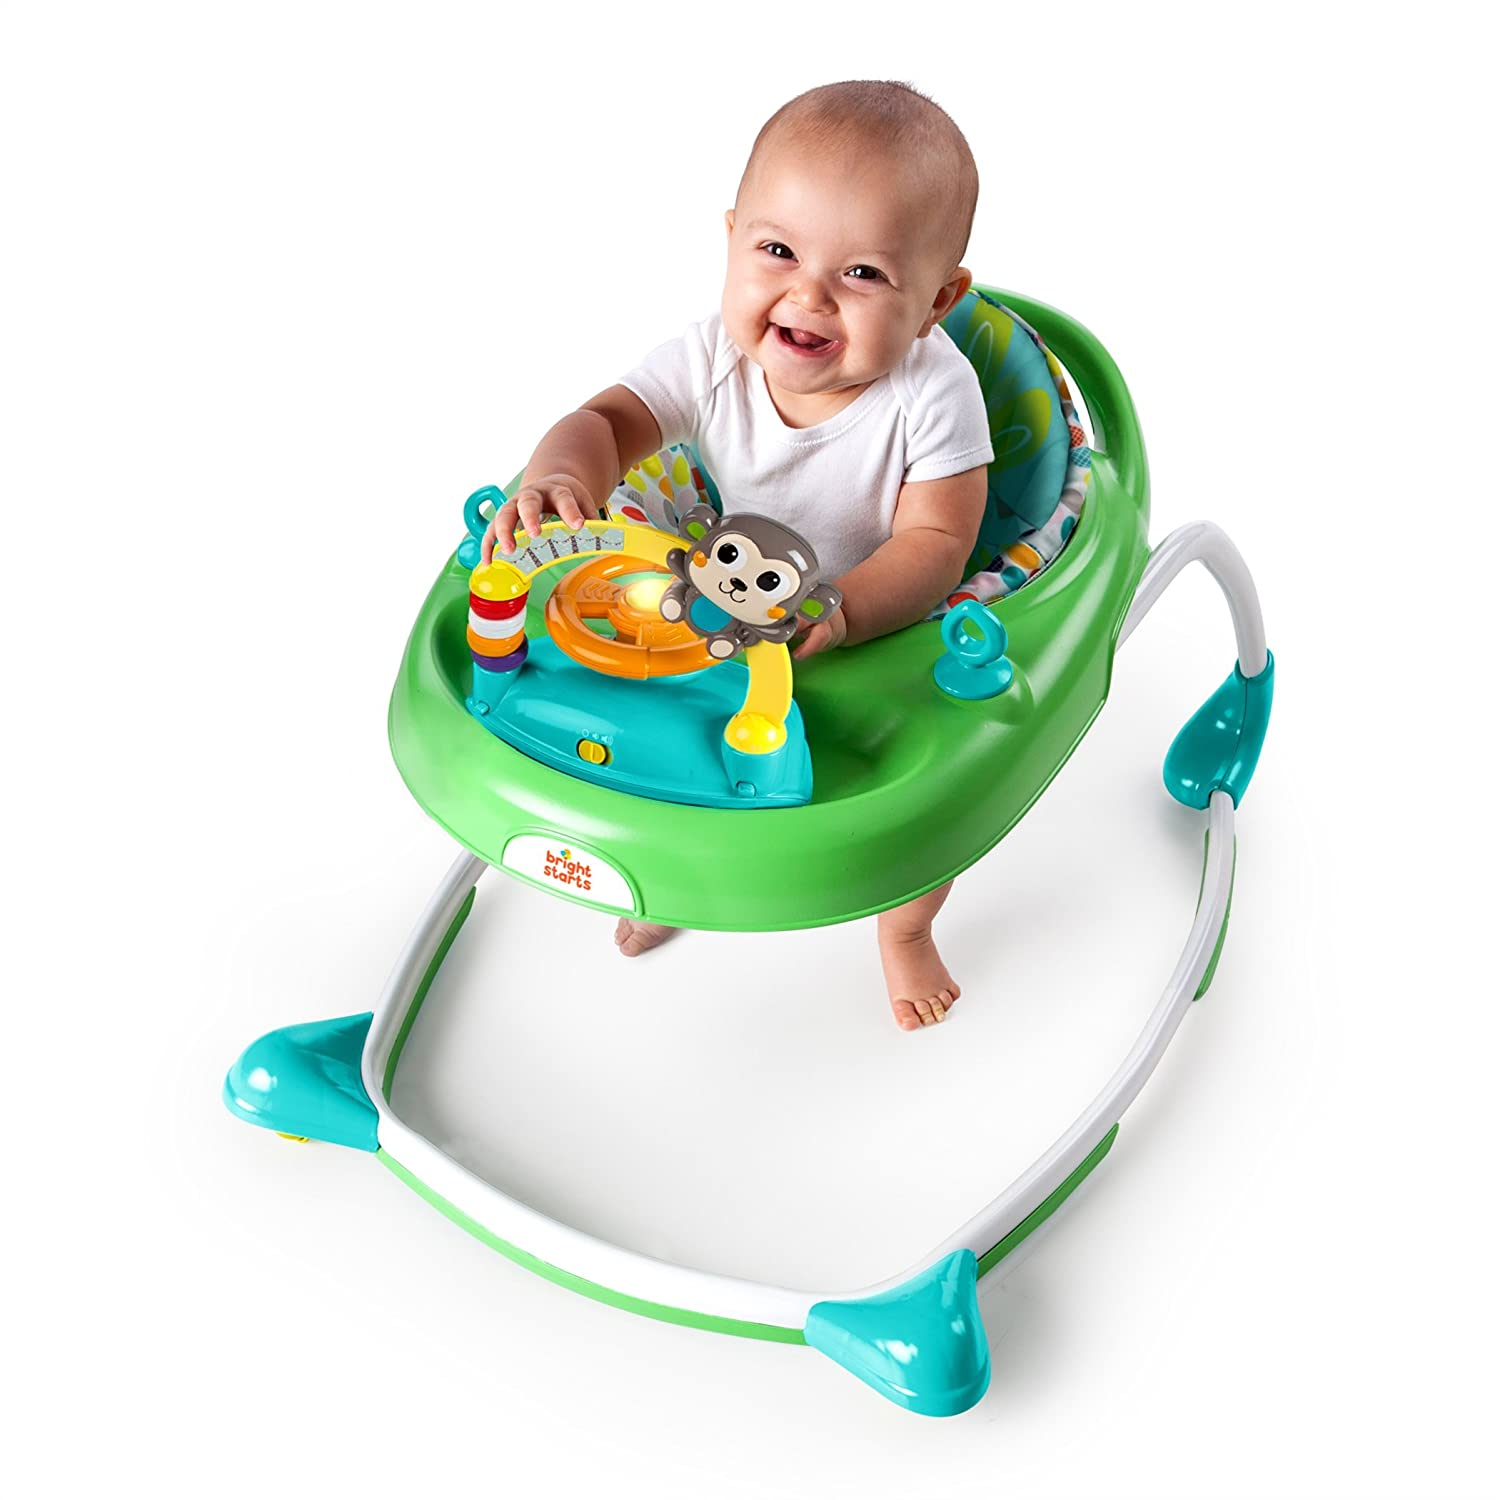 Bright Starts BS60420 - Andadores: Amazon.es: Bebé